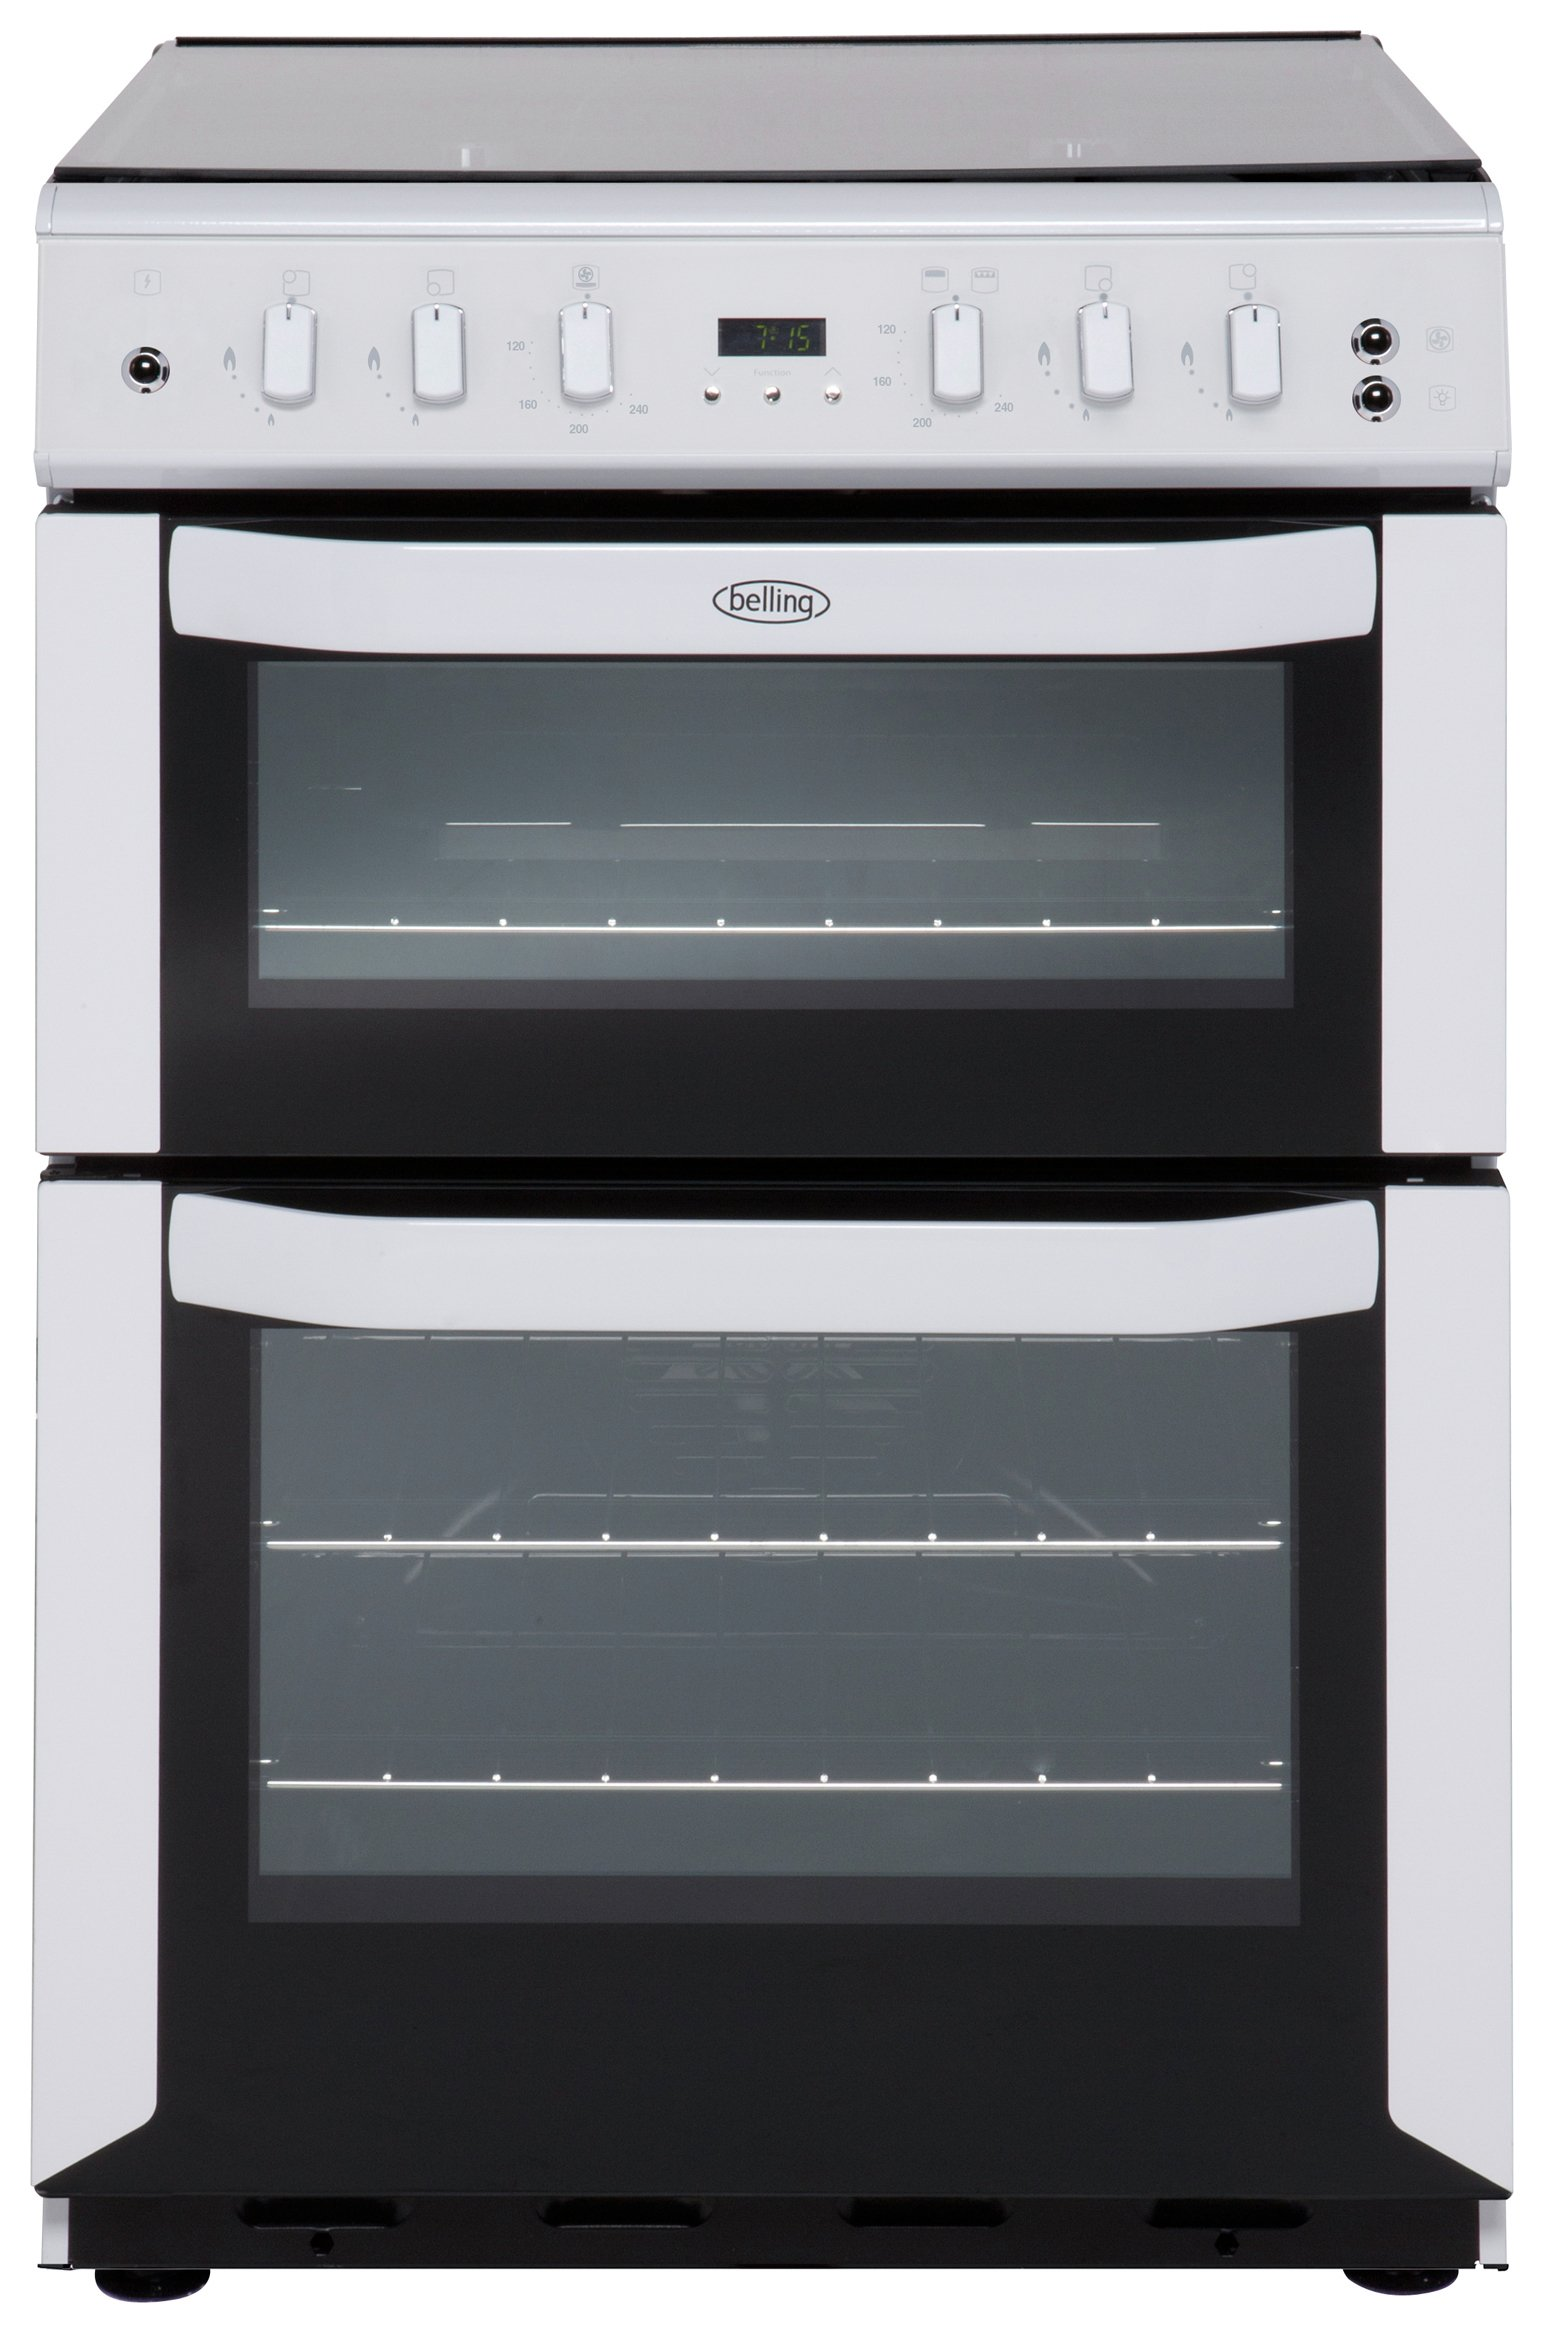 belling fsg60dof gas cooker white at argos. Black Bedroom Furniture Sets. Home Design Ideas